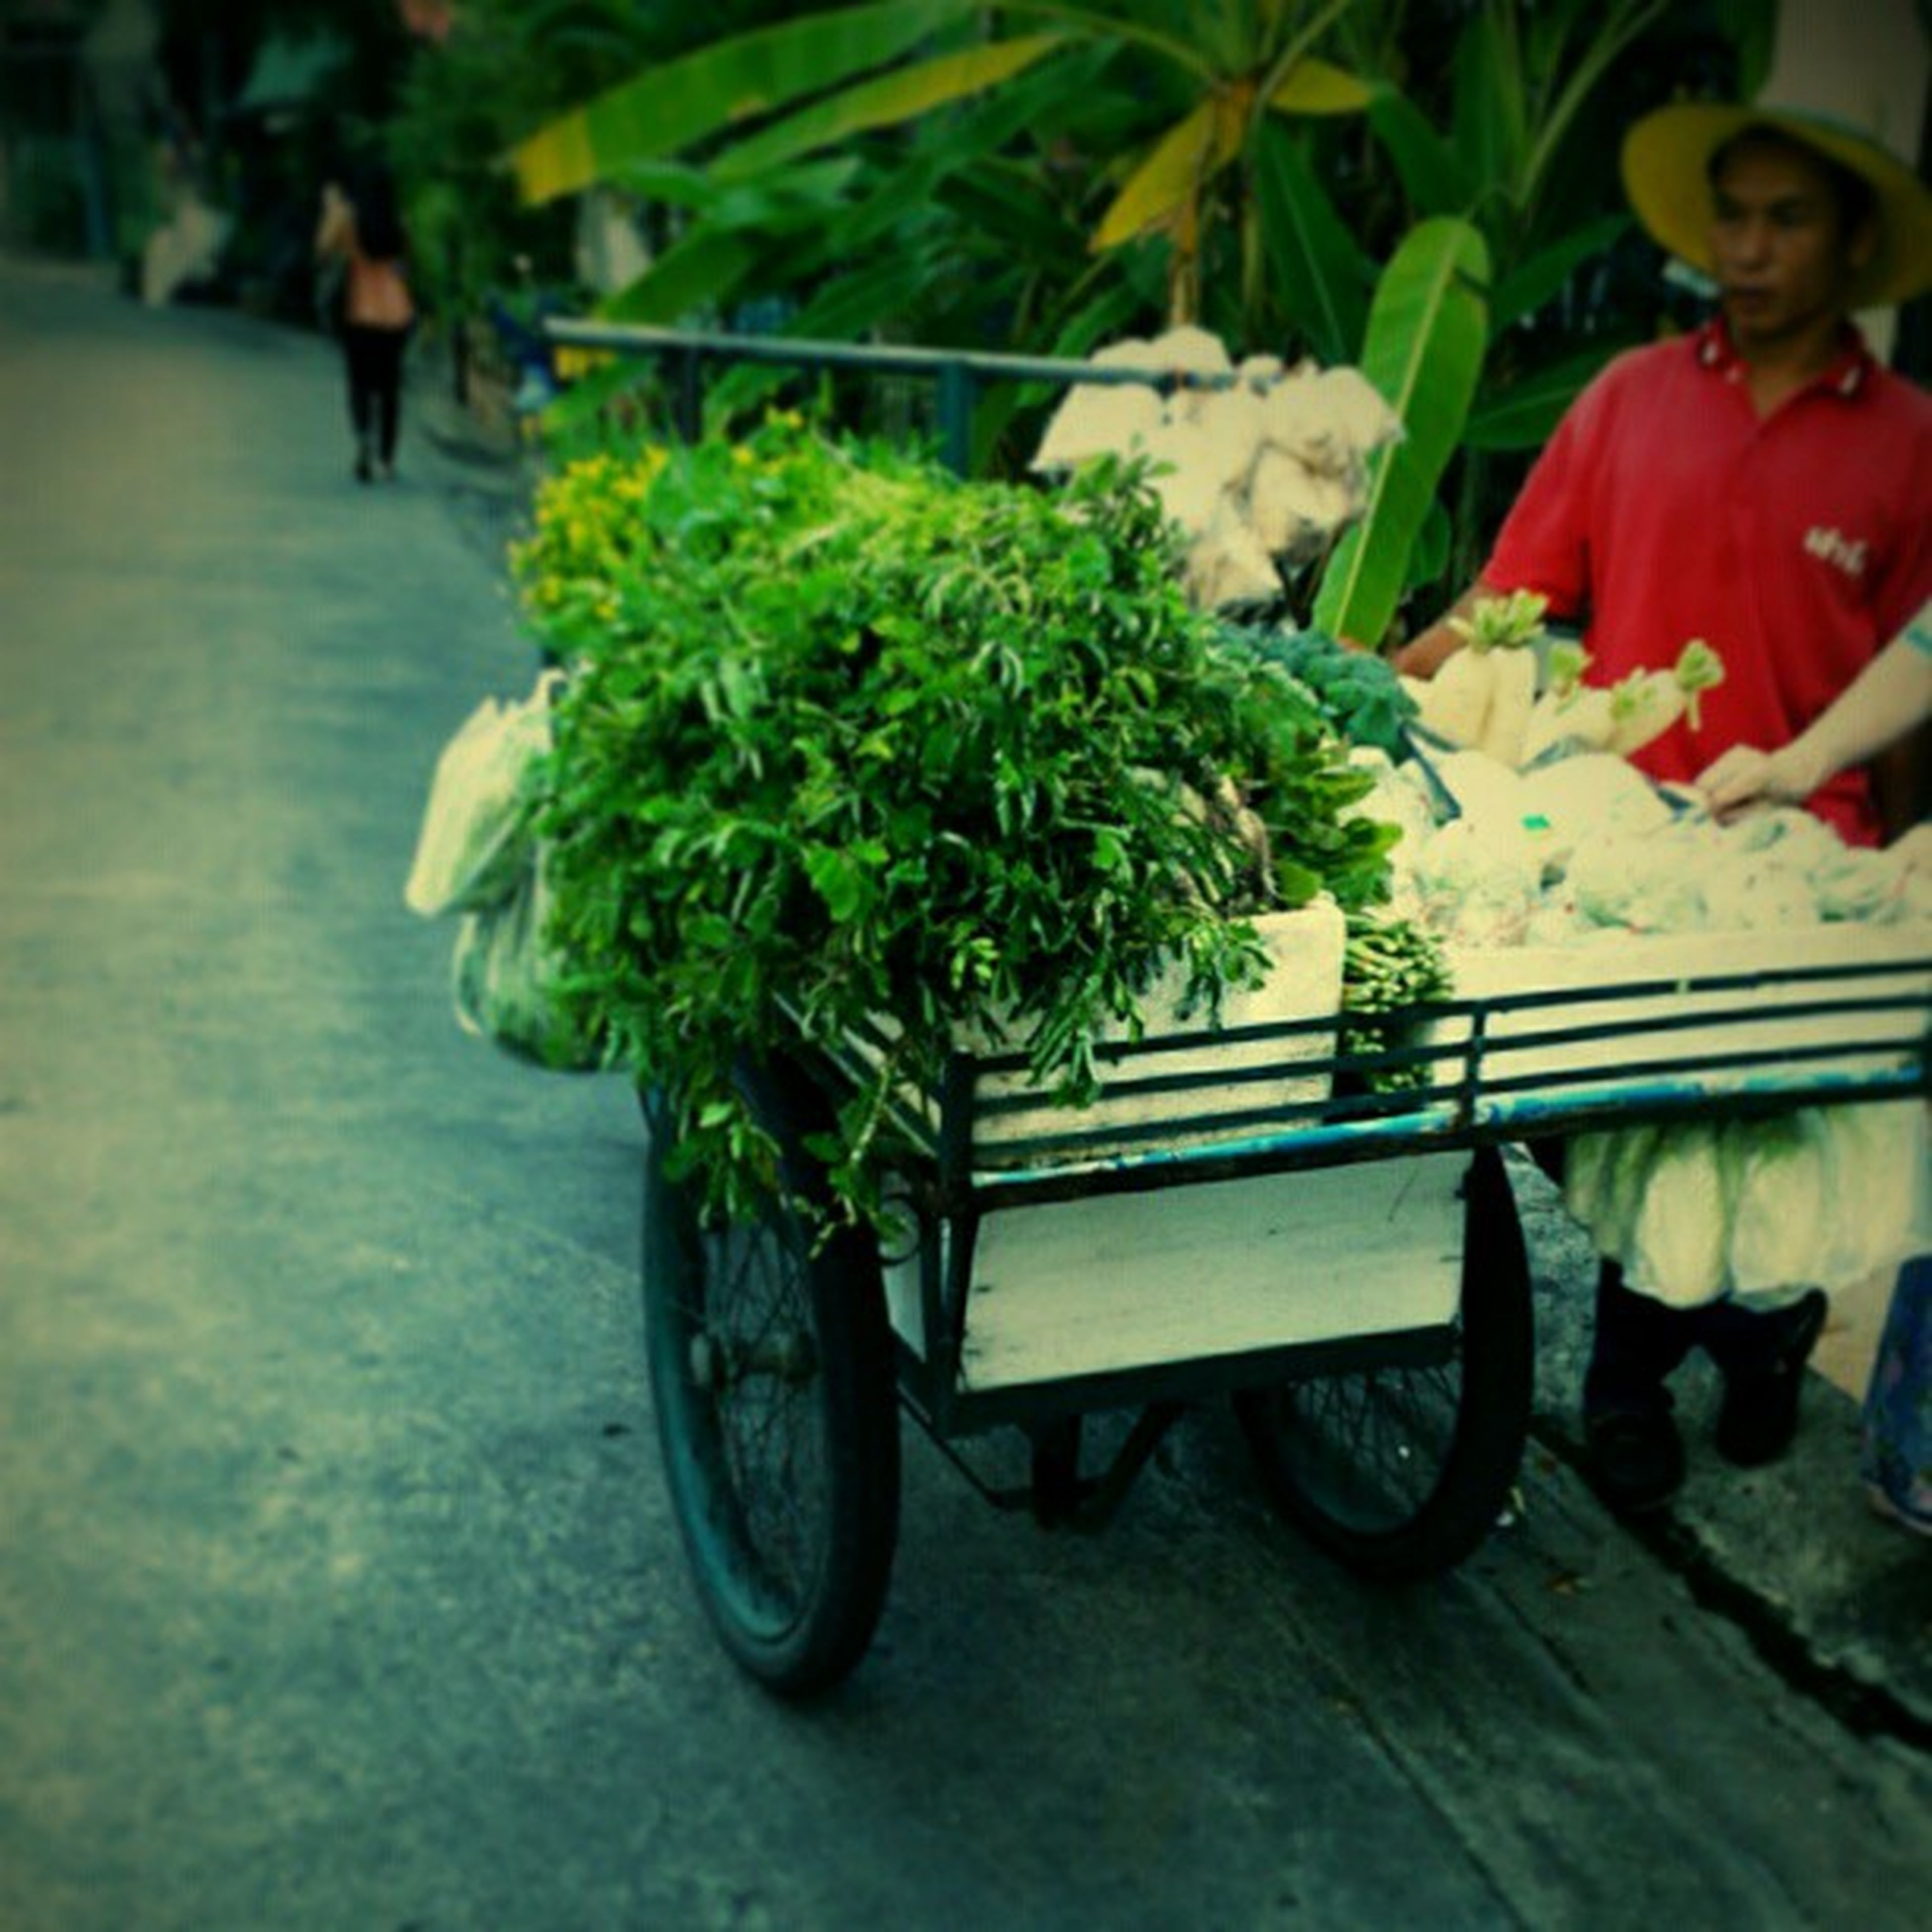 bicycle, transportation, mode of transport, potted plant, land vehicle, flower, street, plant, growth, outdoors, day, incidental people, sidewalk, freshness, road, men, person, lifestyles